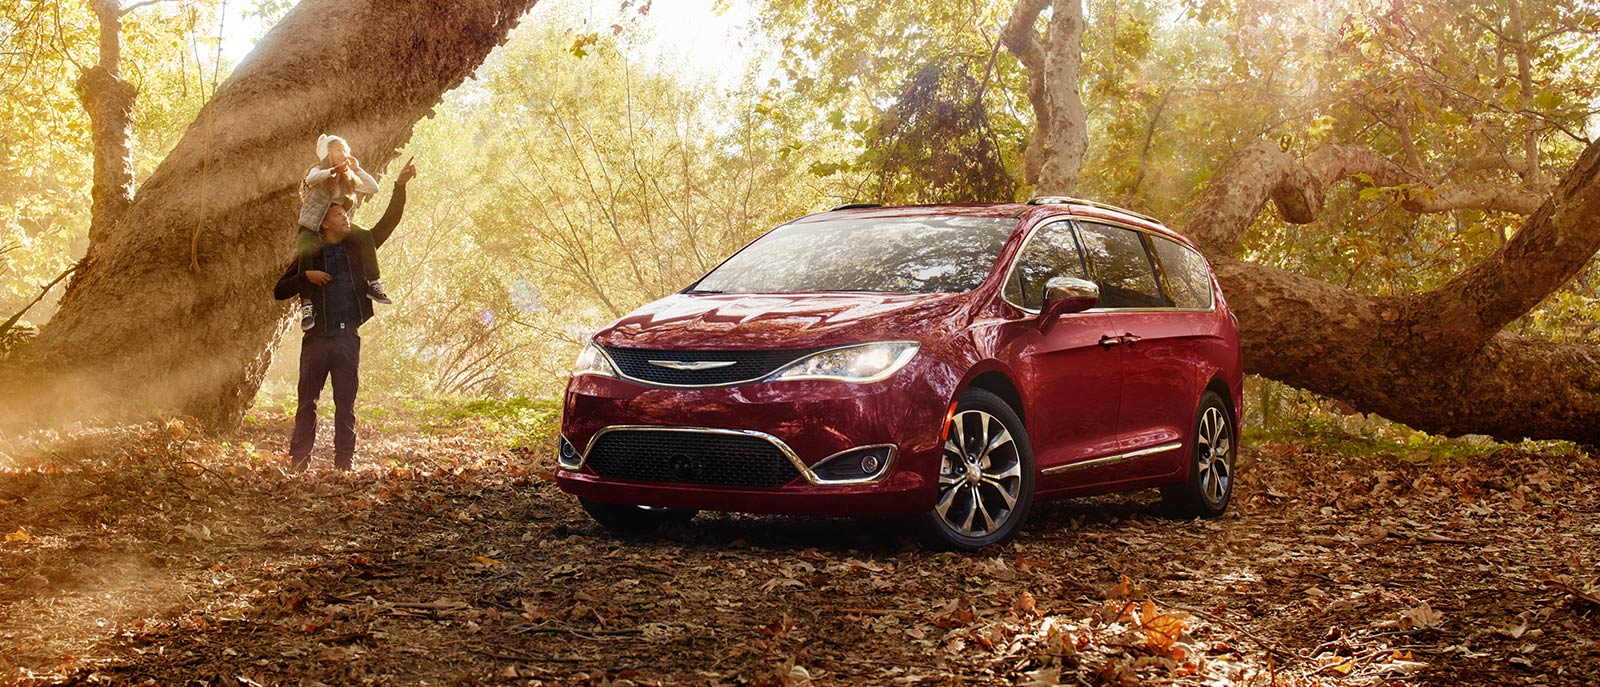 Red Pacifica Exterior Forest